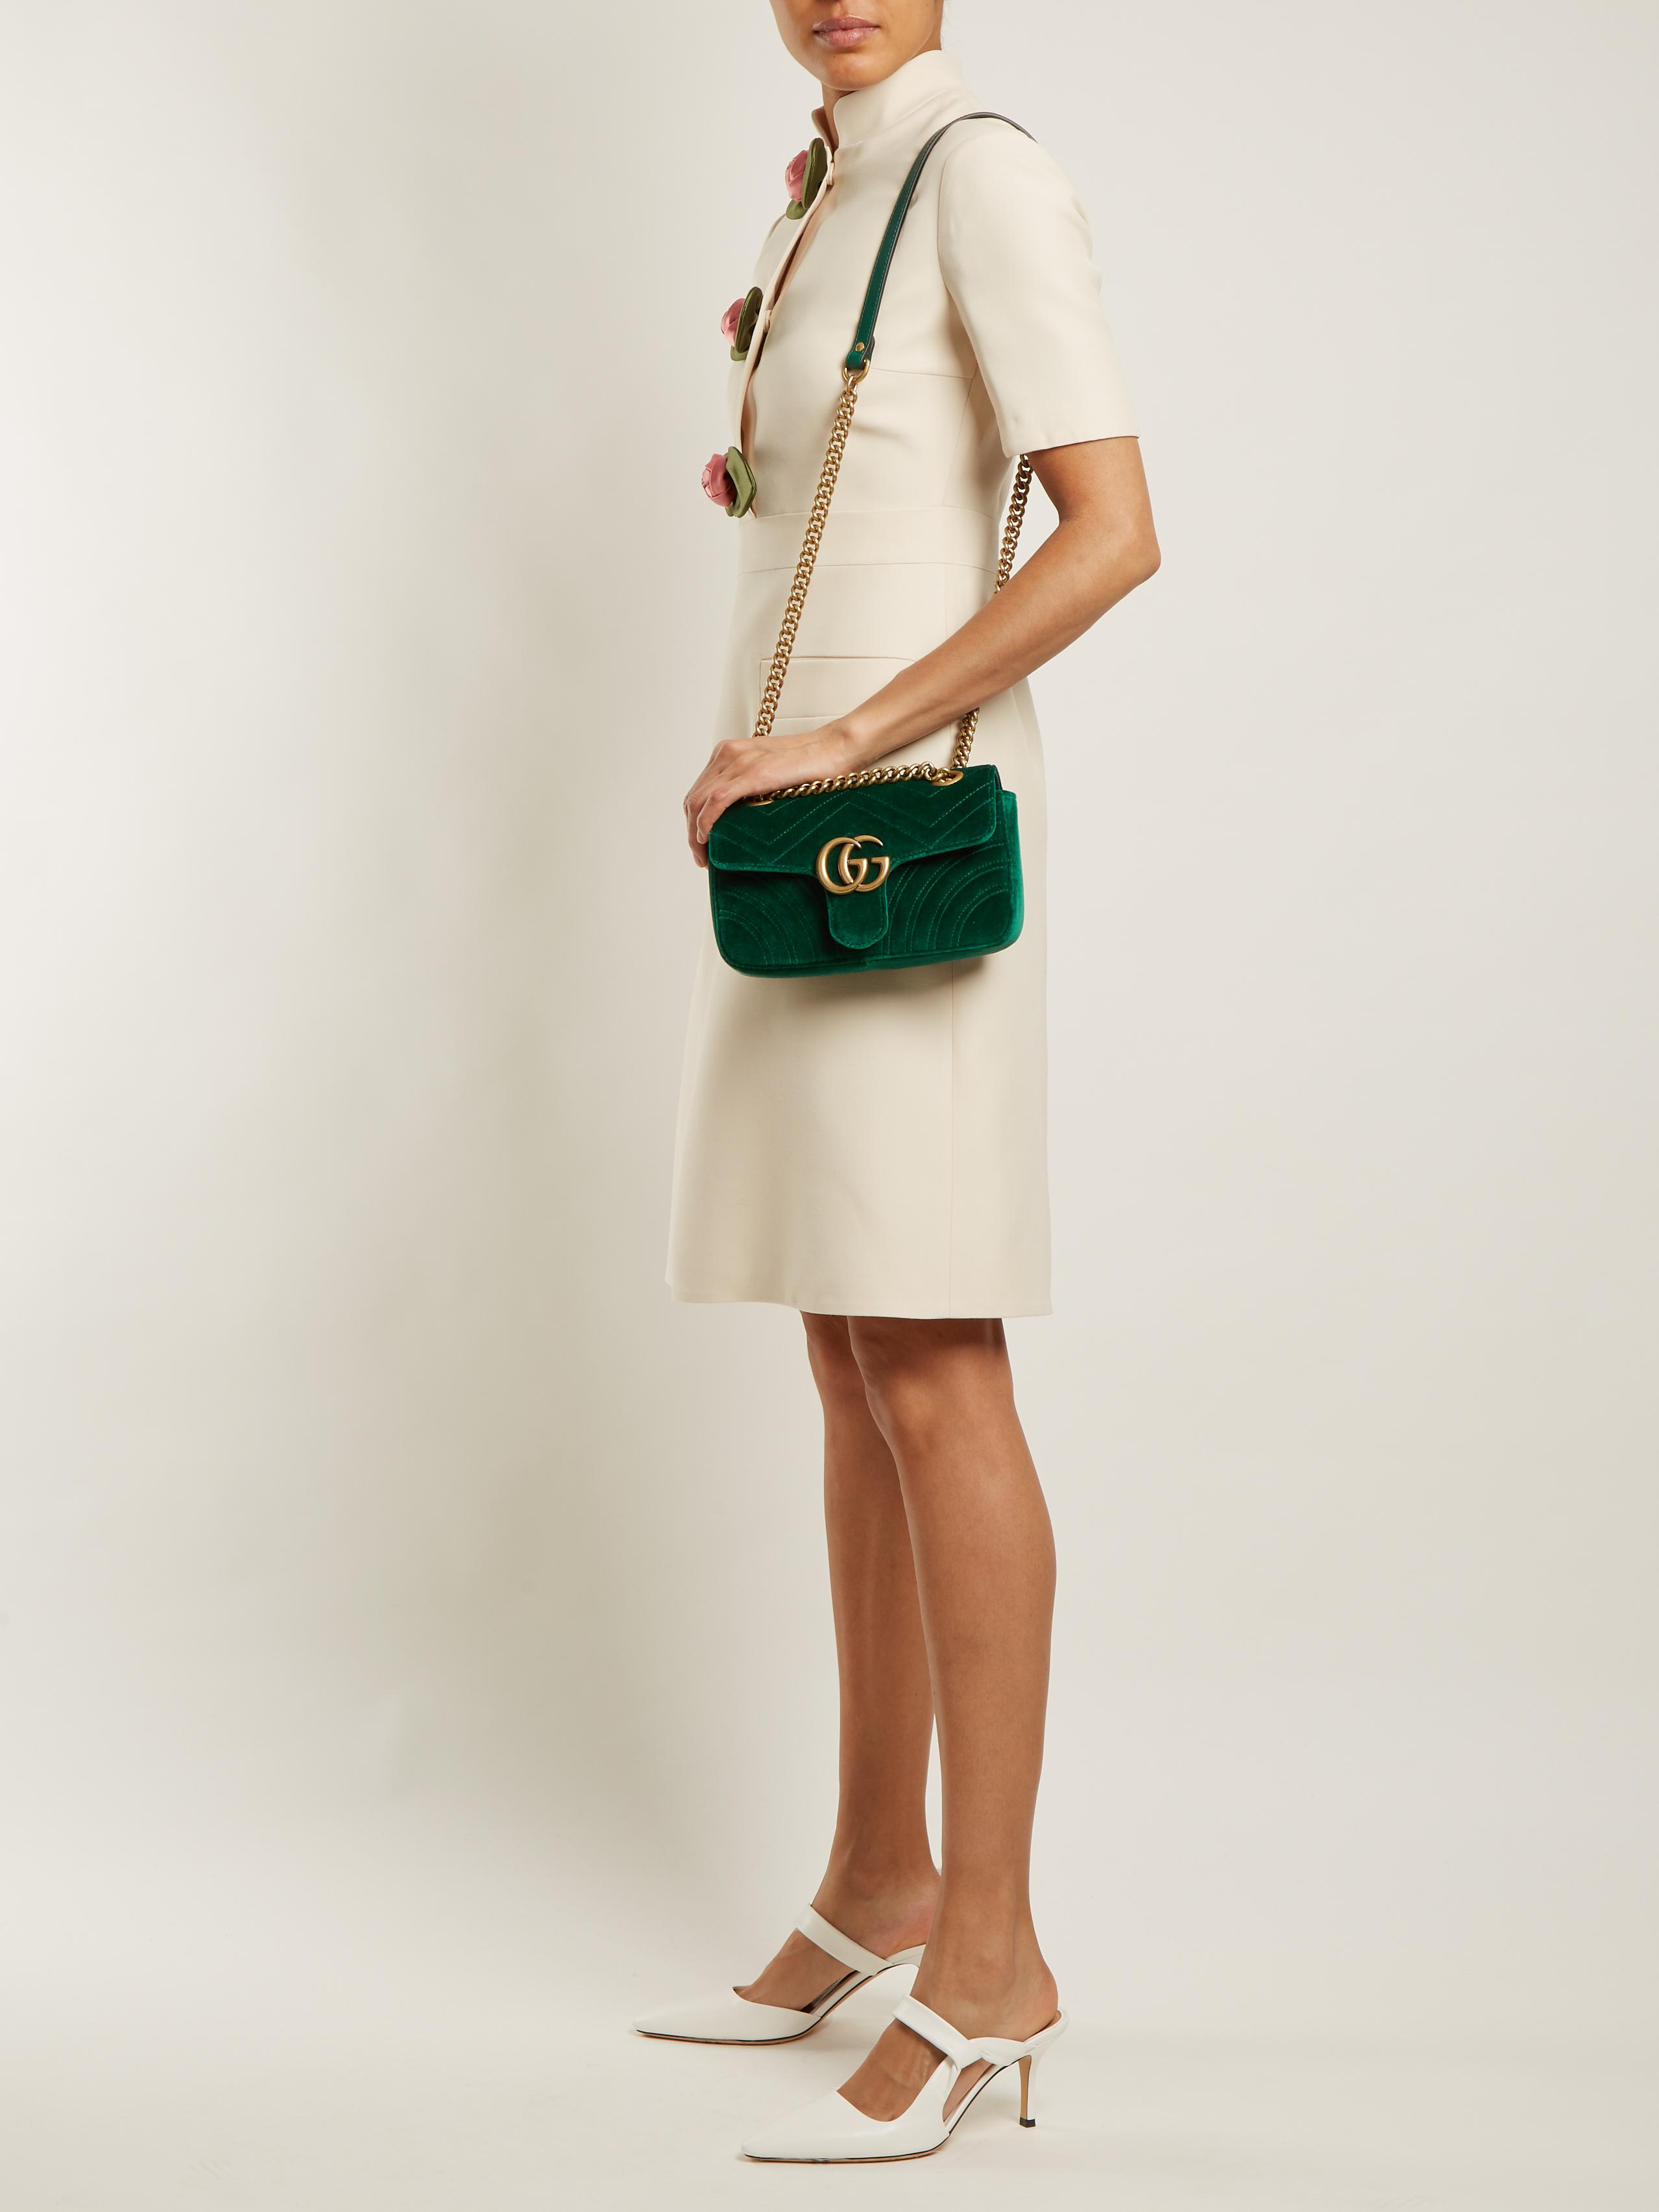 65dc658b80a7 Gucci Gg Marmont Mini Quilted-velvet Cross-body Bag in Green - Lyst